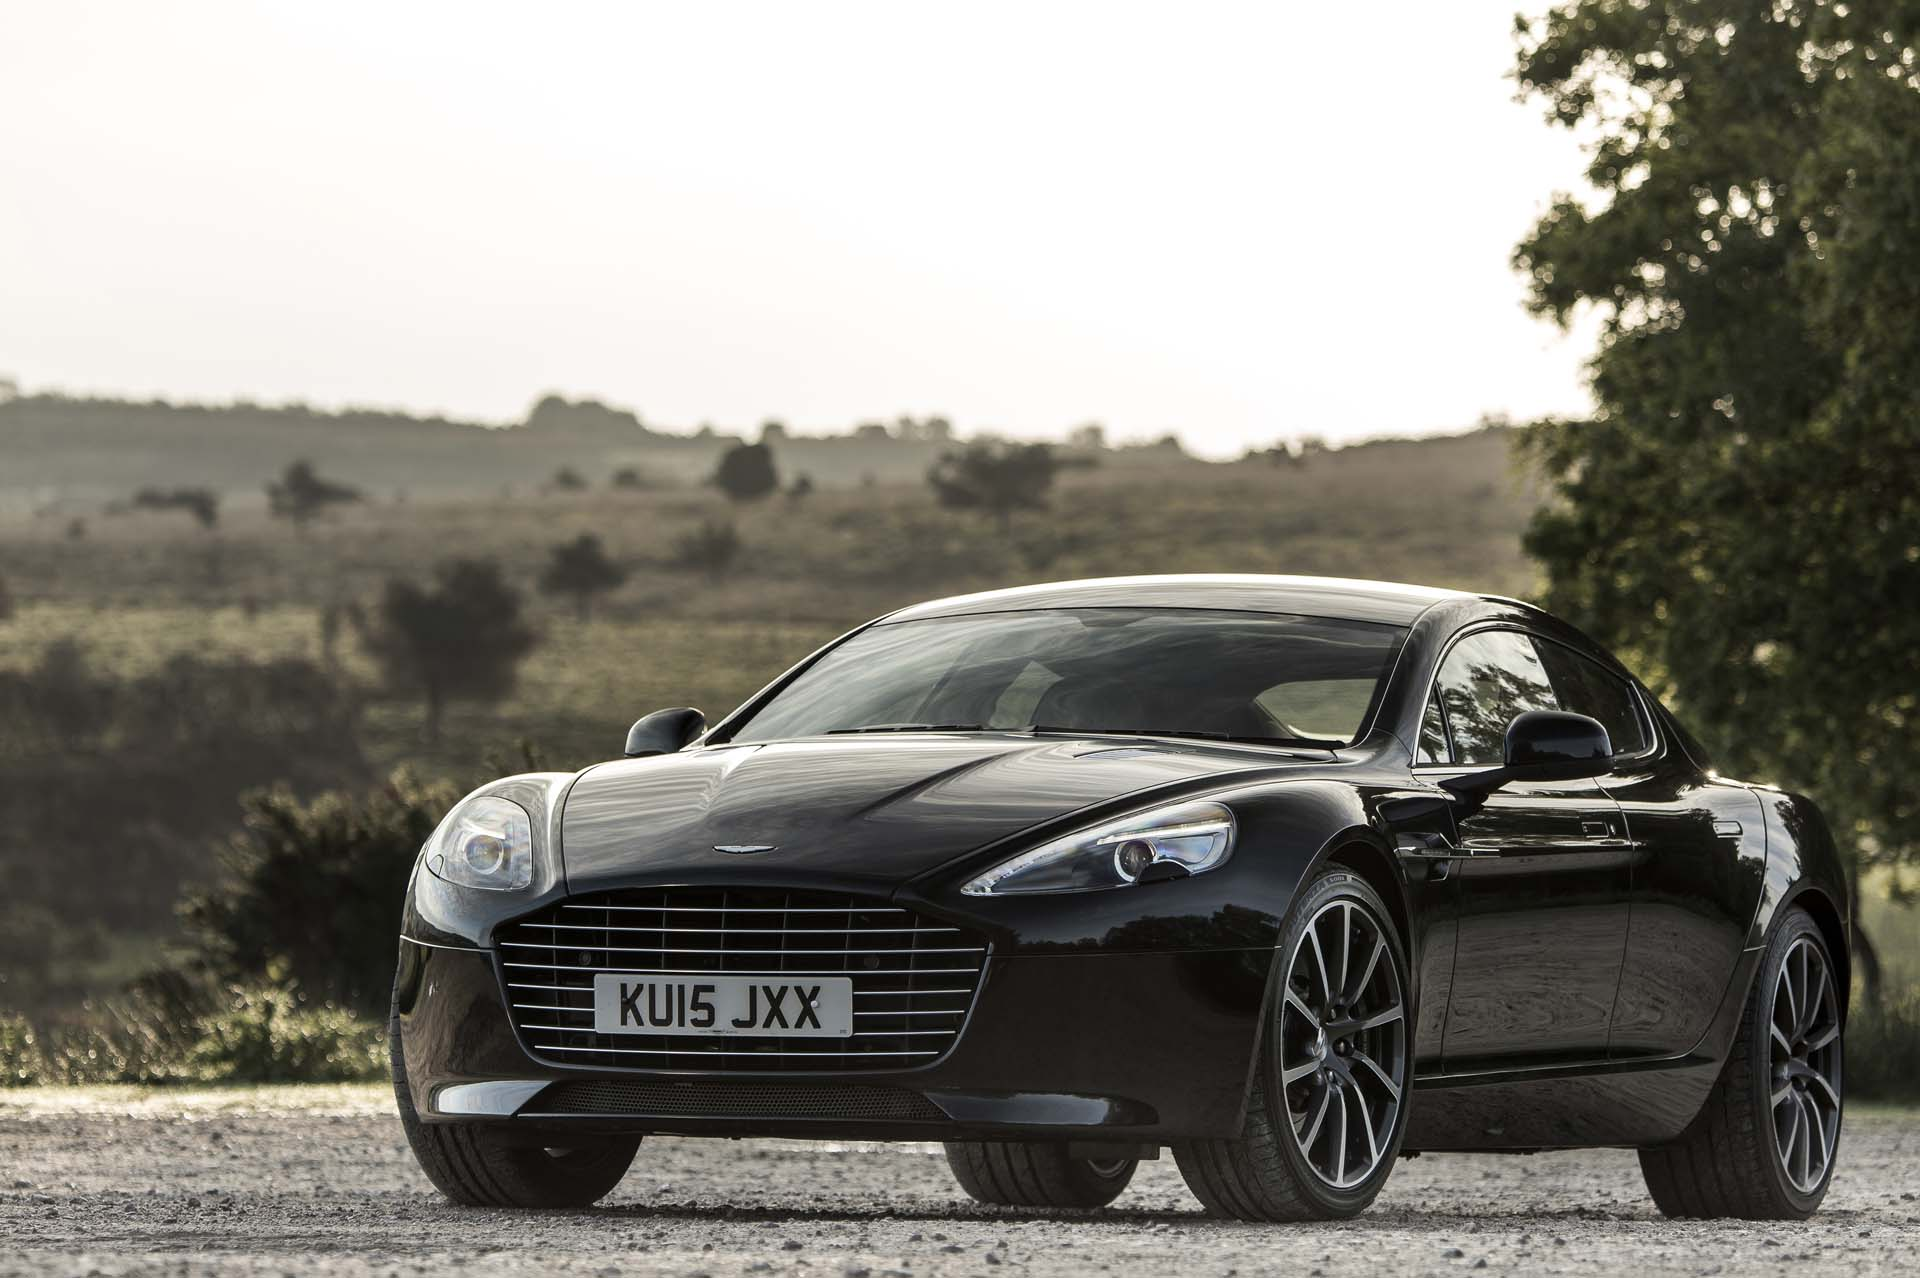 2017 Aston Martin Rapide S Review, Ratings, Specs, Prices